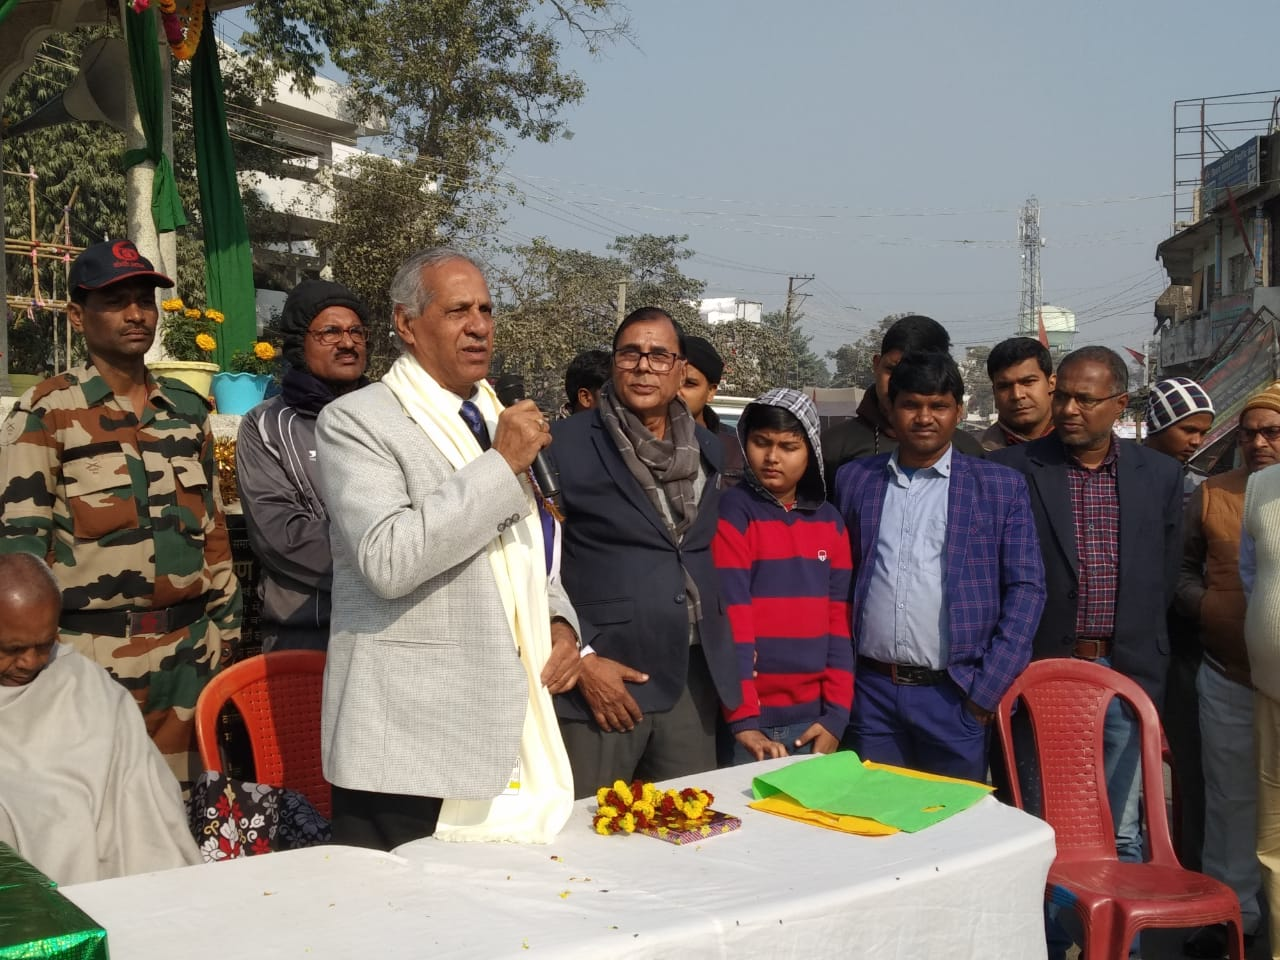 VC Dr.A.K.Ray addressing people on the occasion of Bhupendra Jayanti at Bhupendra Chowk Madhepura.